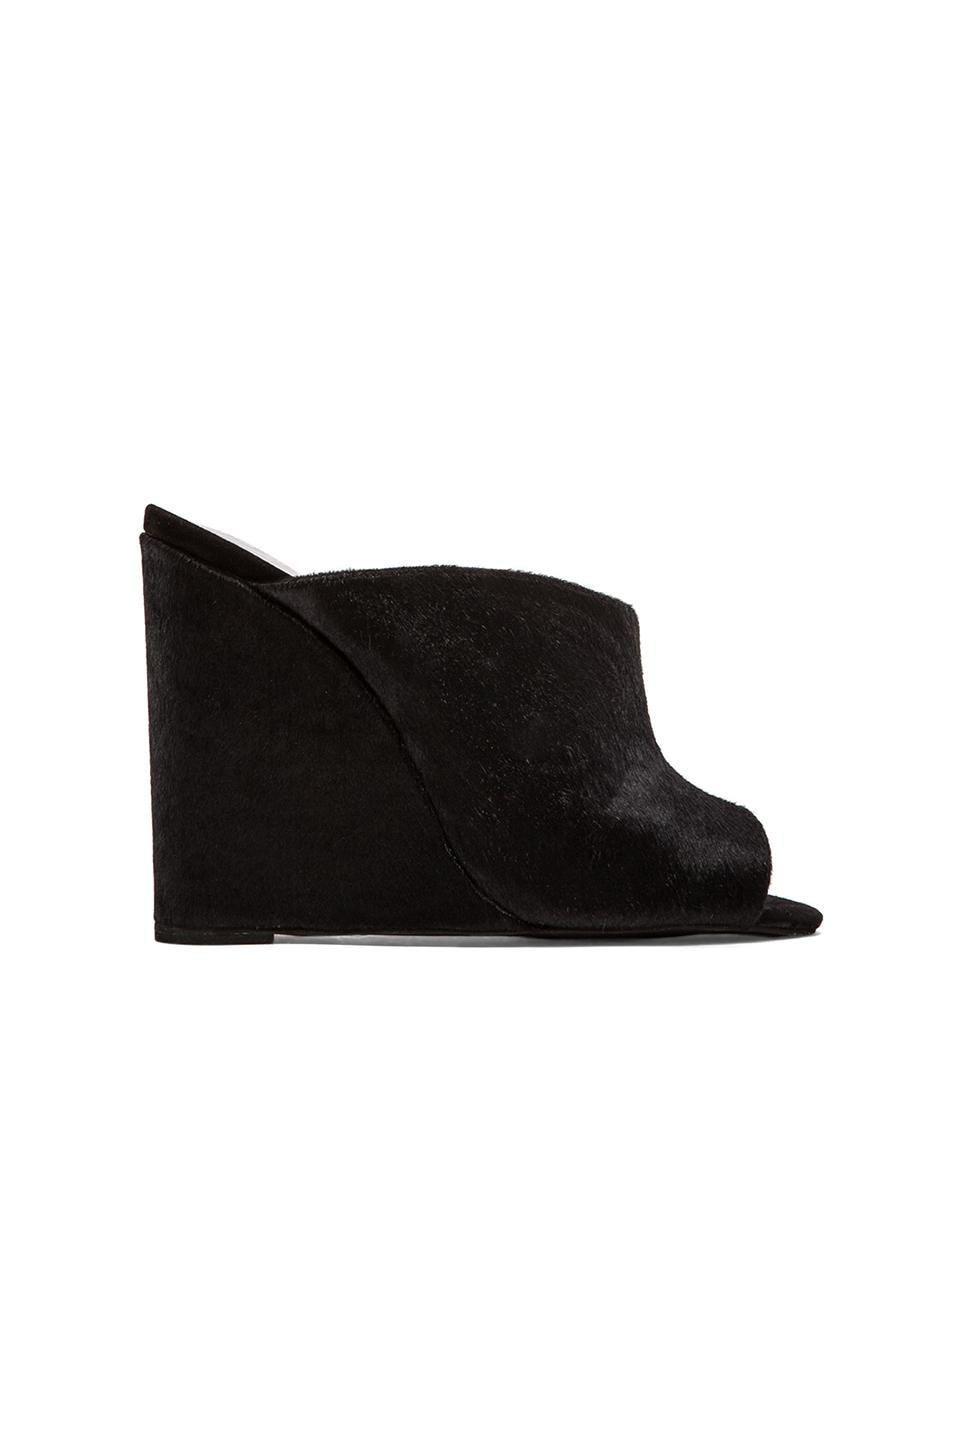 Jeffrey Campbell Jovie Heel in Black Pony Hair